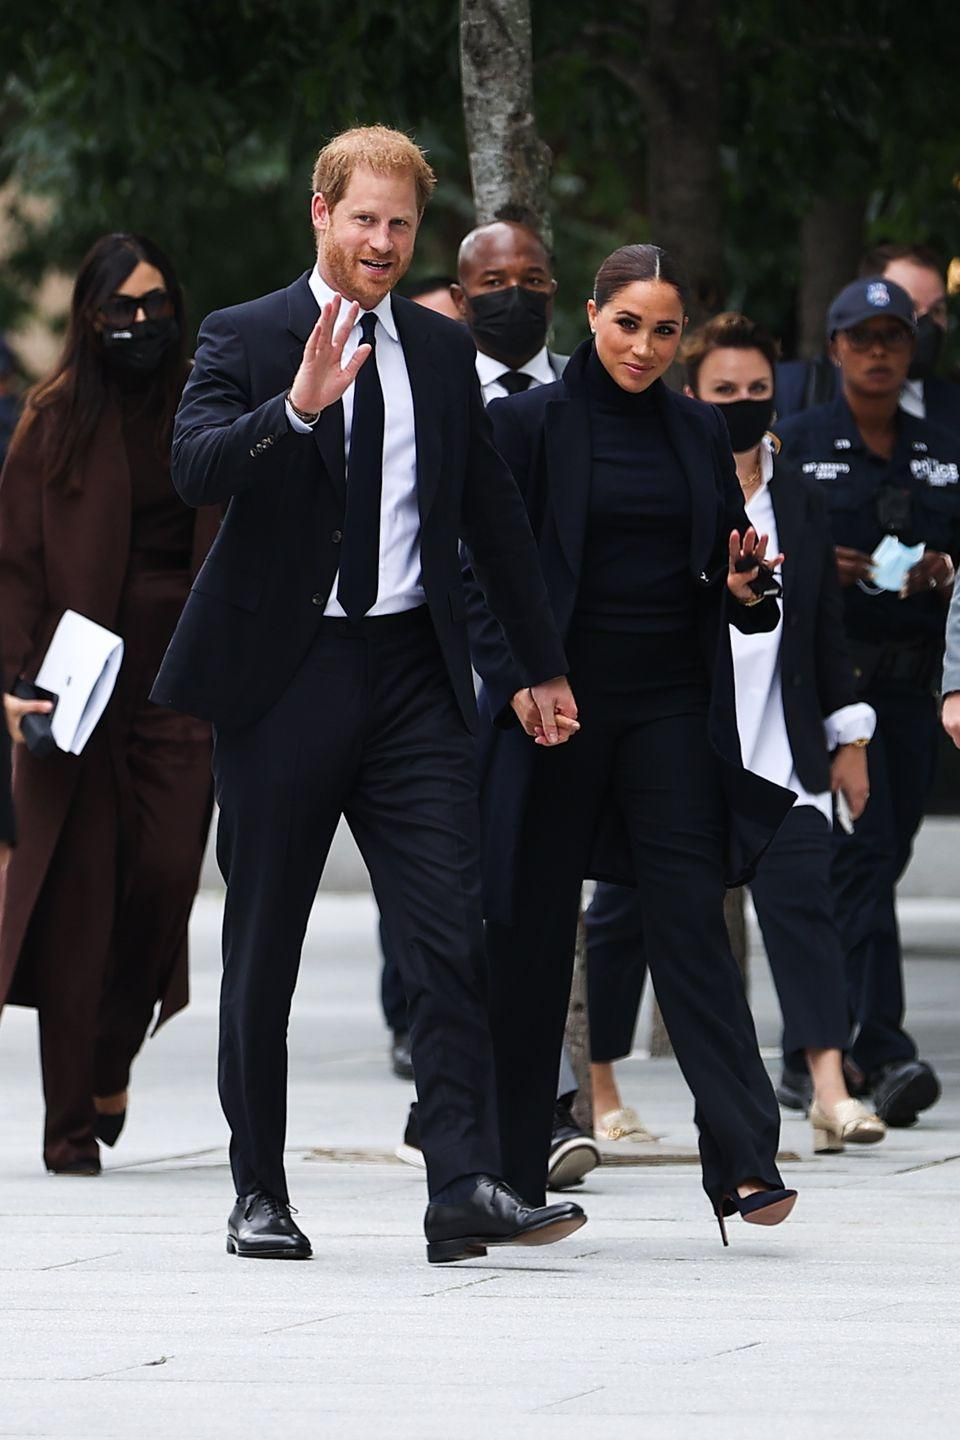 """<p>Meghan Markle has made her first public appearance following the birth of her daughter Lili in spring, and it's safe to say she looks stunning. </p><p>The Duchess of Sussex was seen walking hand-in-hand with her husband, Prince Harry outside the One World Observatory in New York City.</p><p>For the outing Markle wore what might be her chicest outfits to date - an all-black ensemble that consisted of Aquazzura stilettos, wide-leg black trousers, a black roll-neck jumper and black trench coat from Emporio Armani. The Duchess scraped her hair back into a tight bun and was later seen wearing a black face mask. </p><p><a class=""""link rapid-noclick-resp"""" href=""""https://www.elle.com/uk/fashion/what-to-wear/articles/g30975/best-trench-coats-beige-navy-black/"""" rel=""""nofollow noopener"""" target=""""_blank"""" data-ylk=""""slk:SHOP TRENCH COATS NOW"""">SHOP TRENCH COATS NOW</a></p>"""